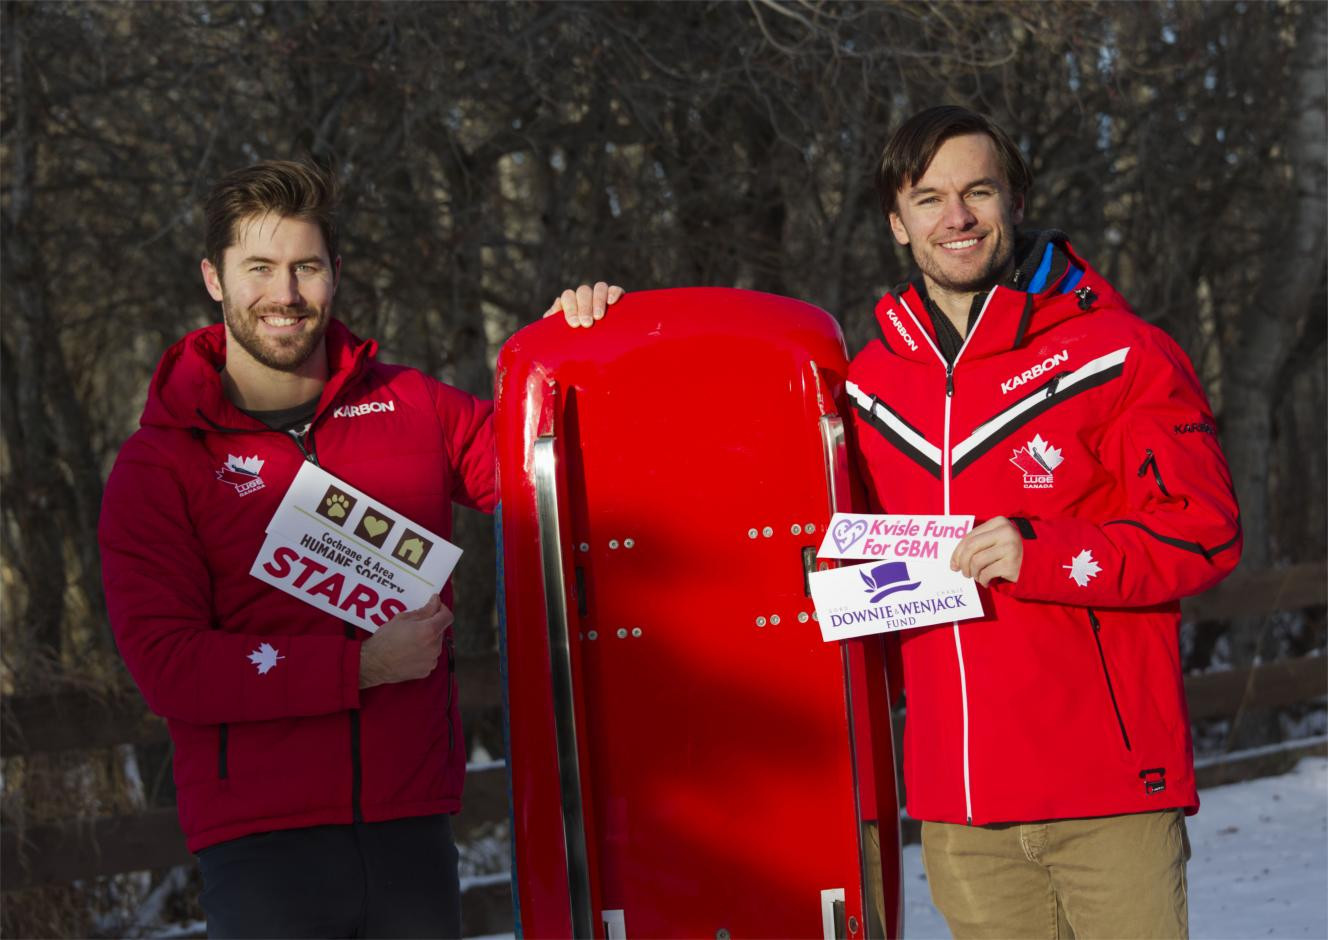 Olympic luge medallists to race with charities on their sled